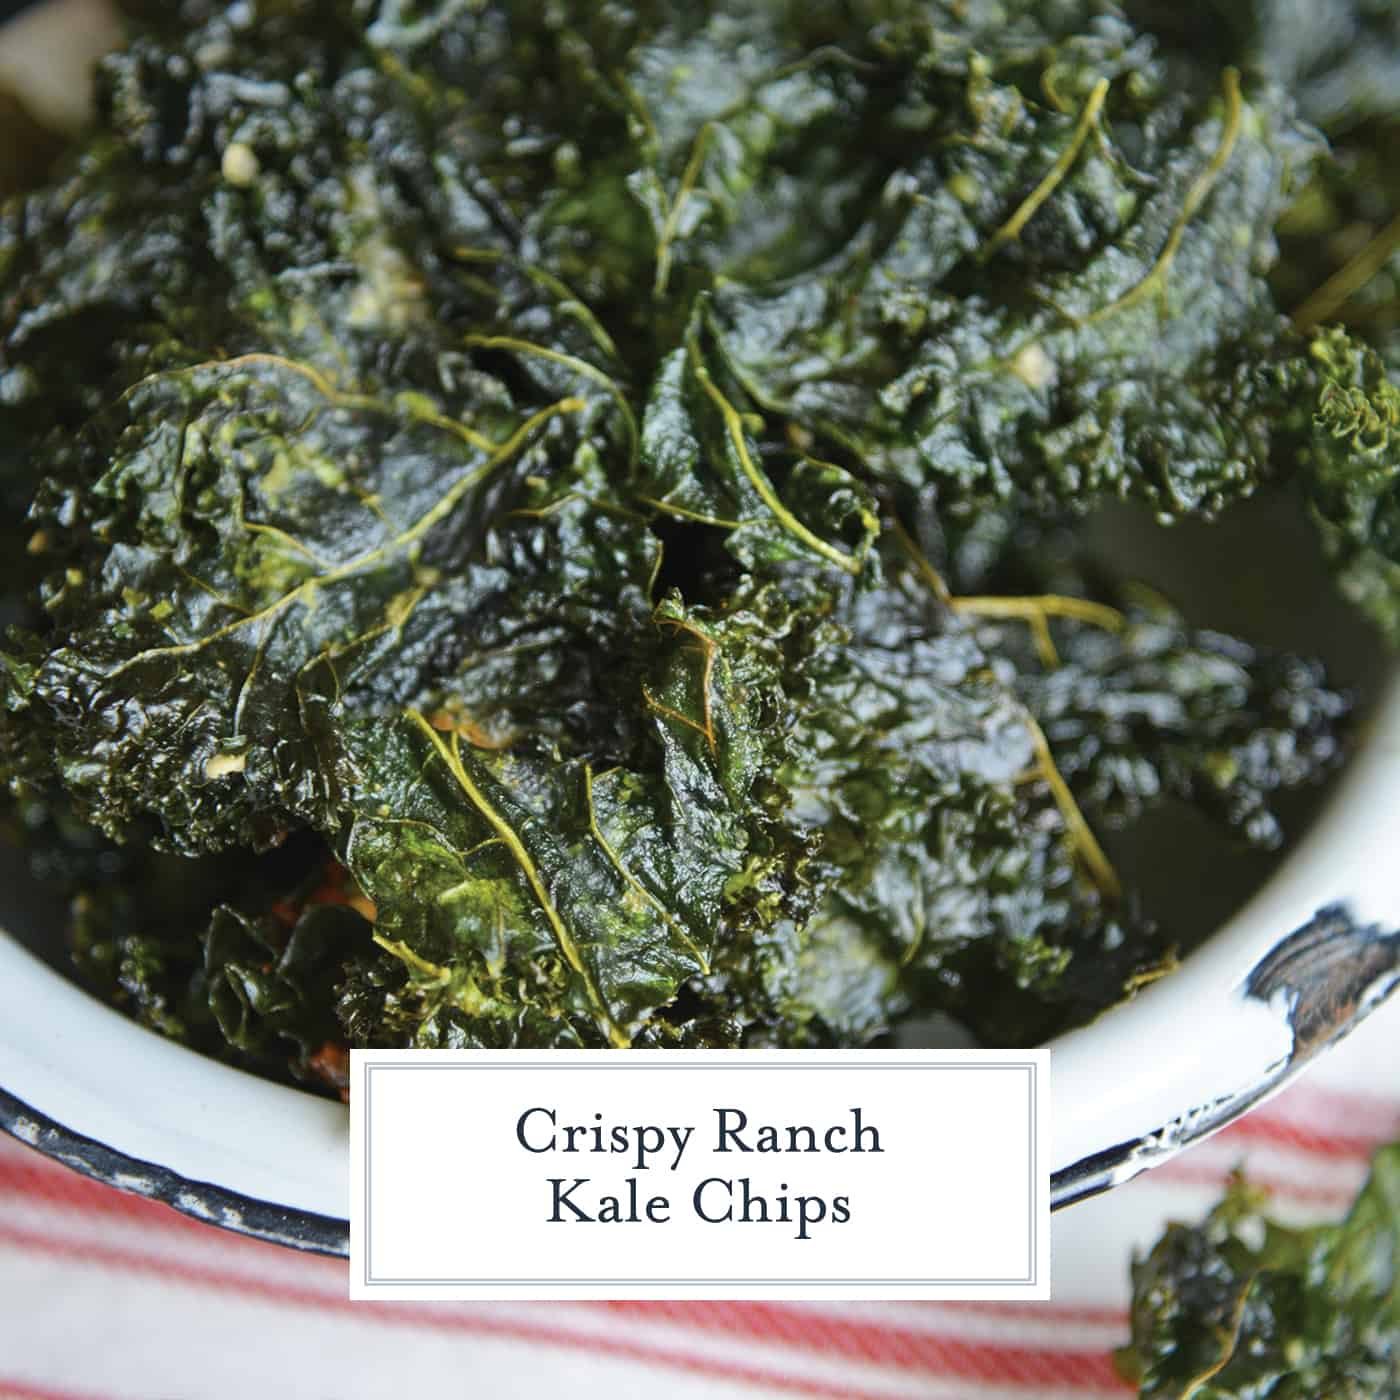 Ranch Kale Chips are a quick and easy 3 ingredient kale chips recipe that offer a tasty and healthy alternative to other chips and snacks. #ranchkalechips #kalechipsrecipe www.savoryexperiments.com